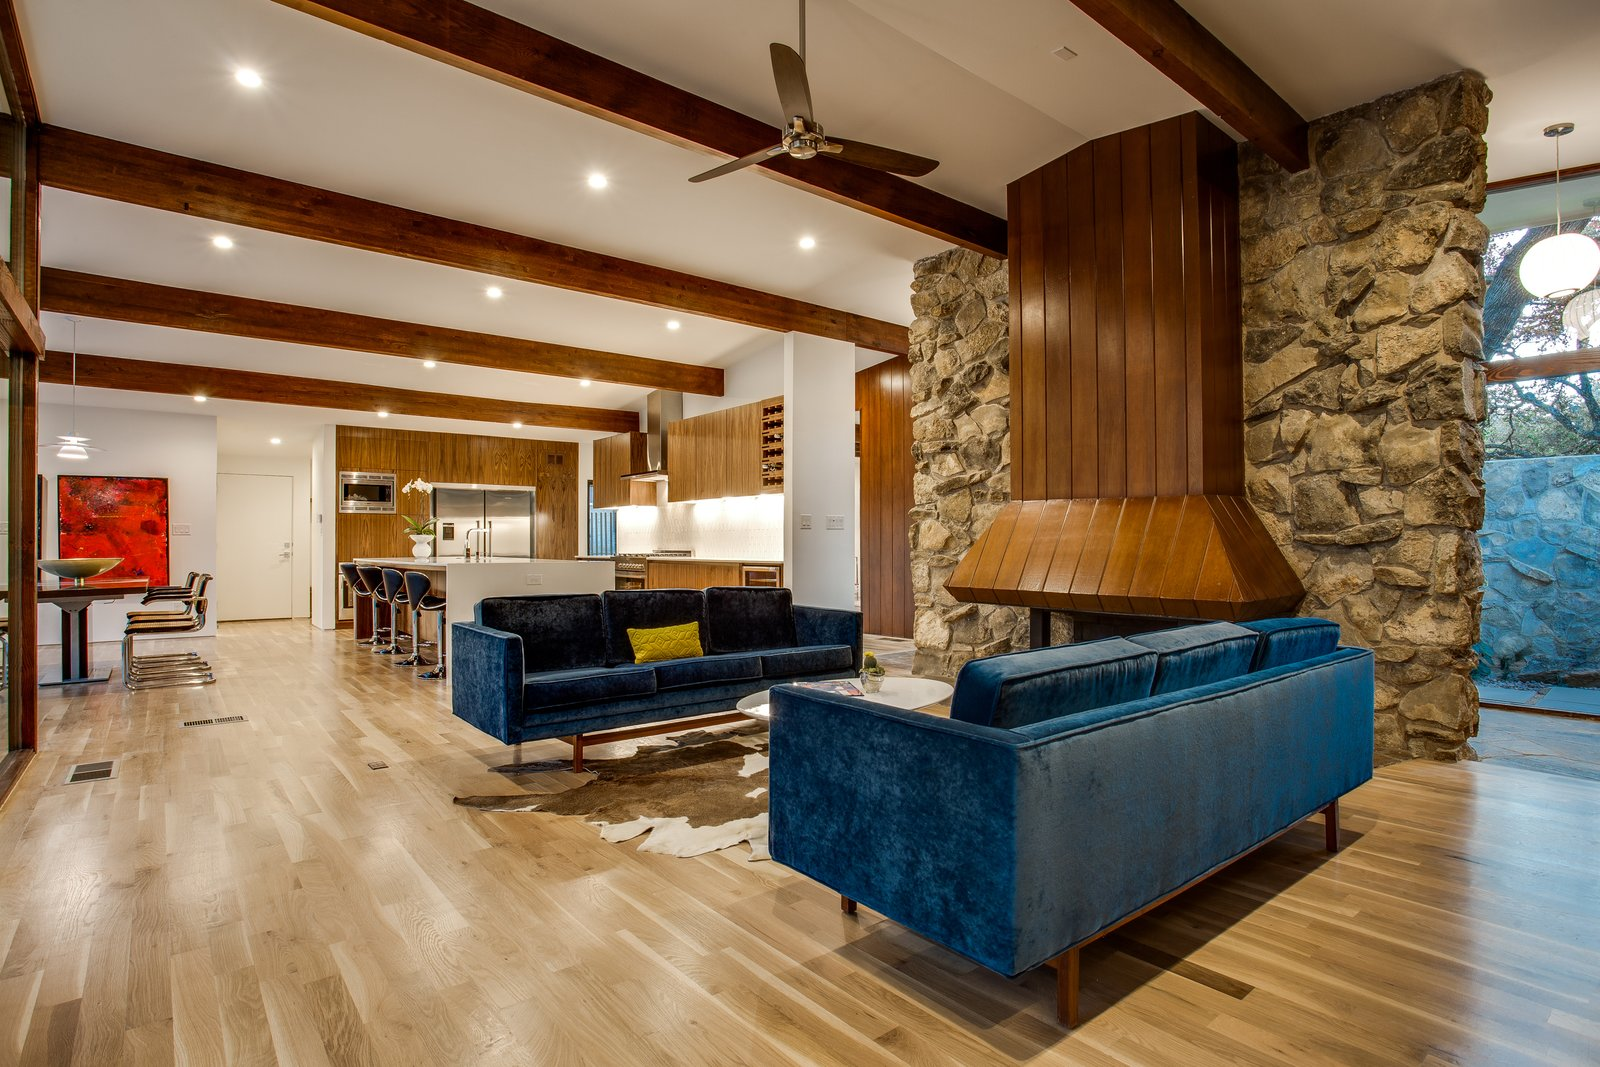 Living Room, Sofa, Recessed Lighting, Ceiling Lighting, Light Hardwood Floor, Gas Burning Fireplace, and Standard Layout Fireplace Family and fireplace after  1963 Post and Beam Mid Century Modern by Tavis Westbrook